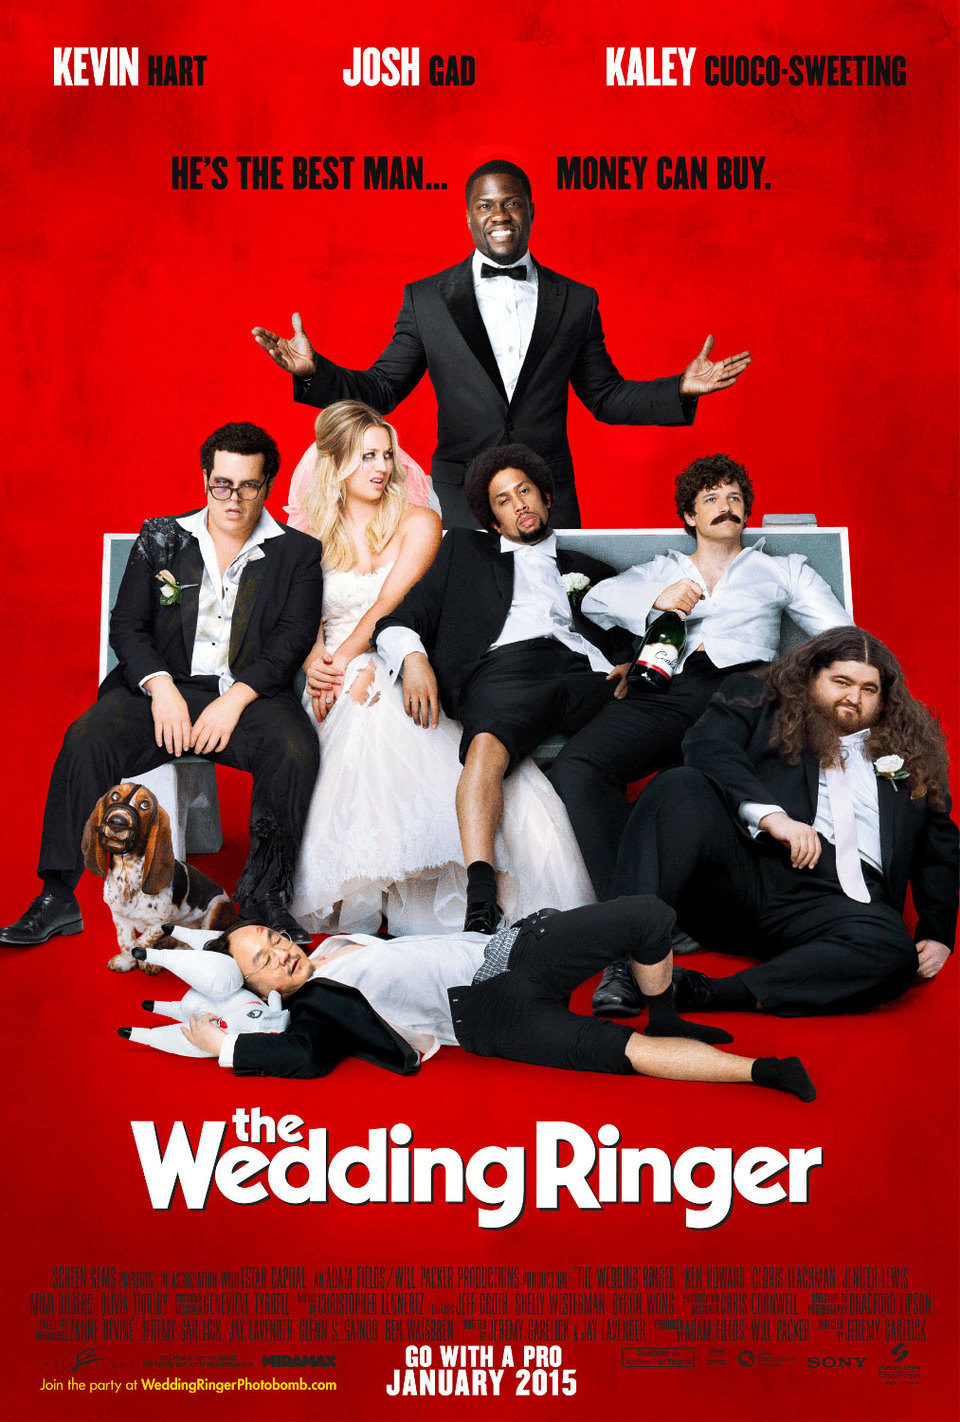 EEUU poster for The Wedding Ringer